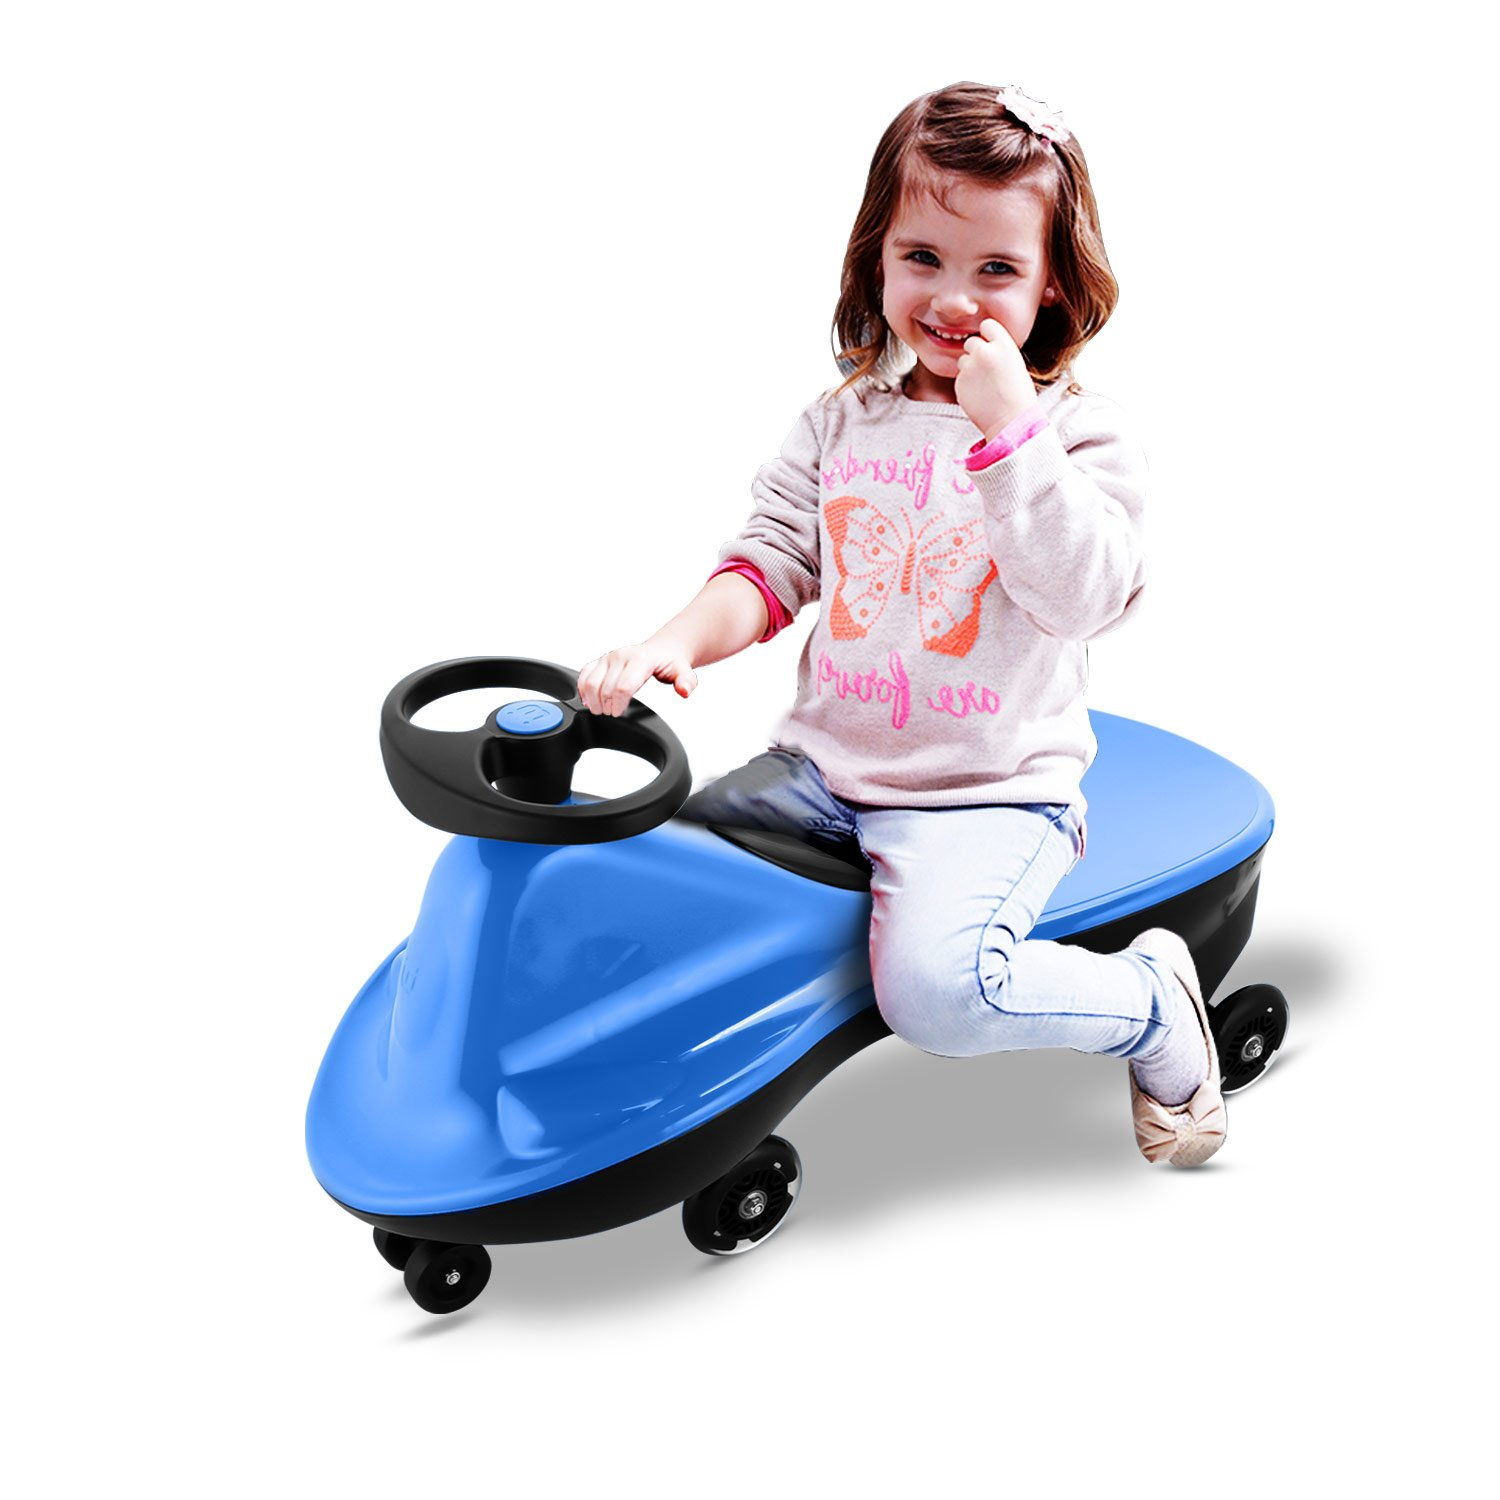 Smibie Swing Wiggle Car Plasma Cars Ride On No Setup Required LED flash wheels No batteries Twist Go Kids Child Girls and Boys Car Toy【US stock】